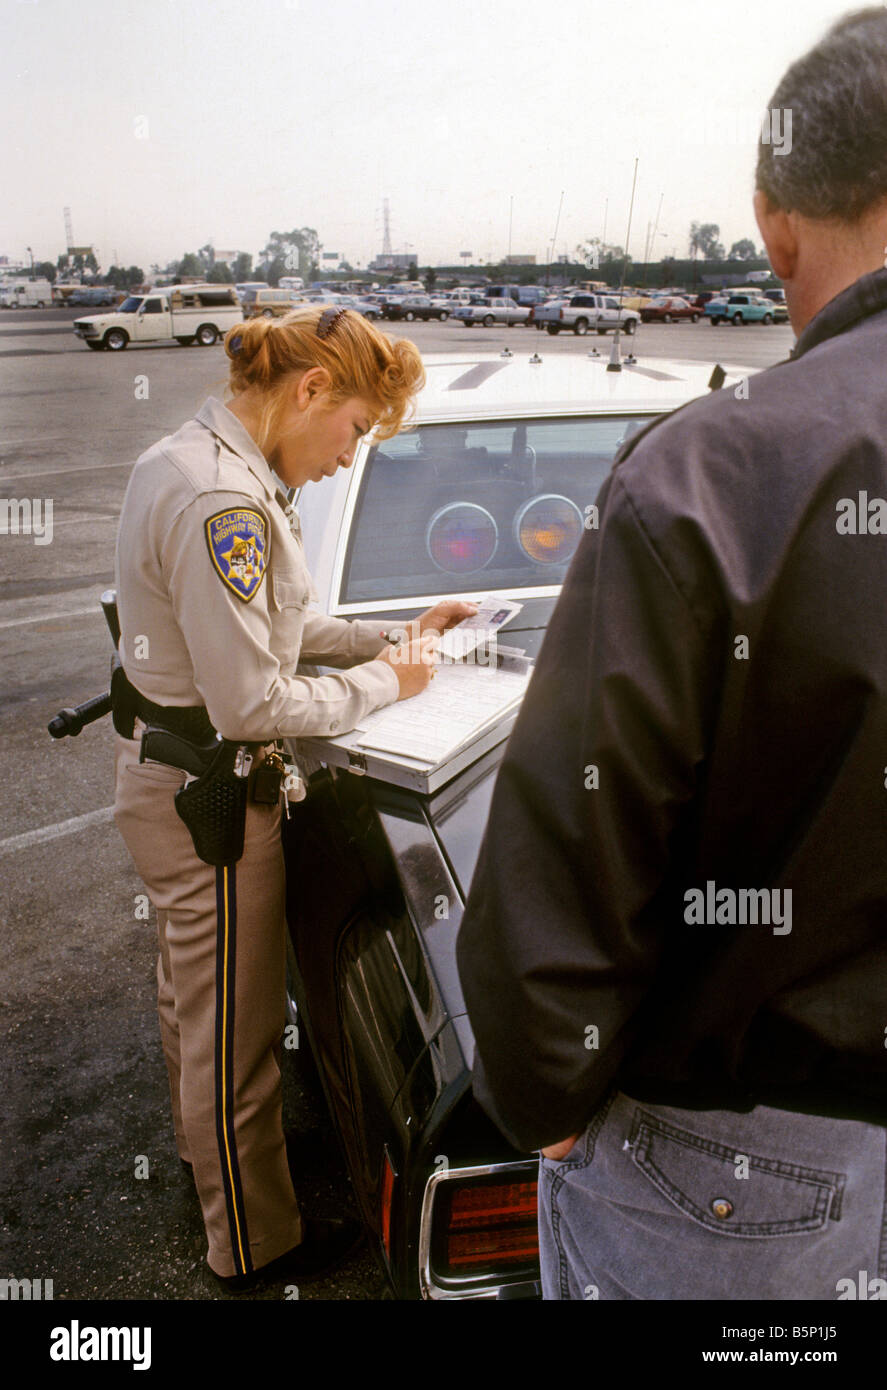 Female California Highway Patrol Officer Writes Citation